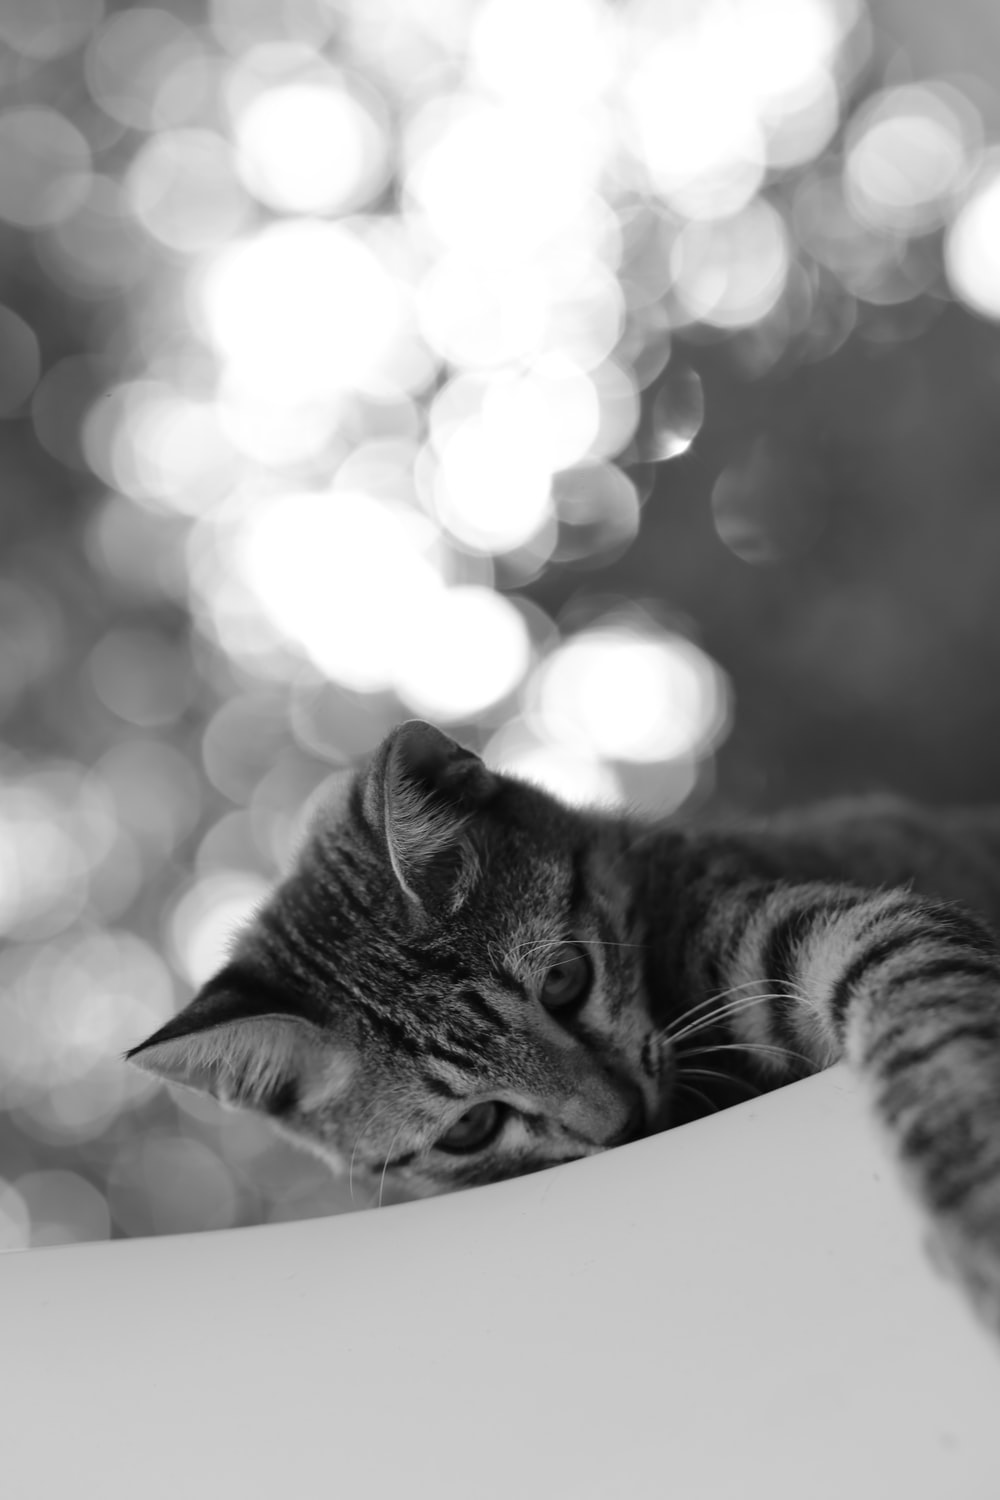 grayscale photography of tabby kitten